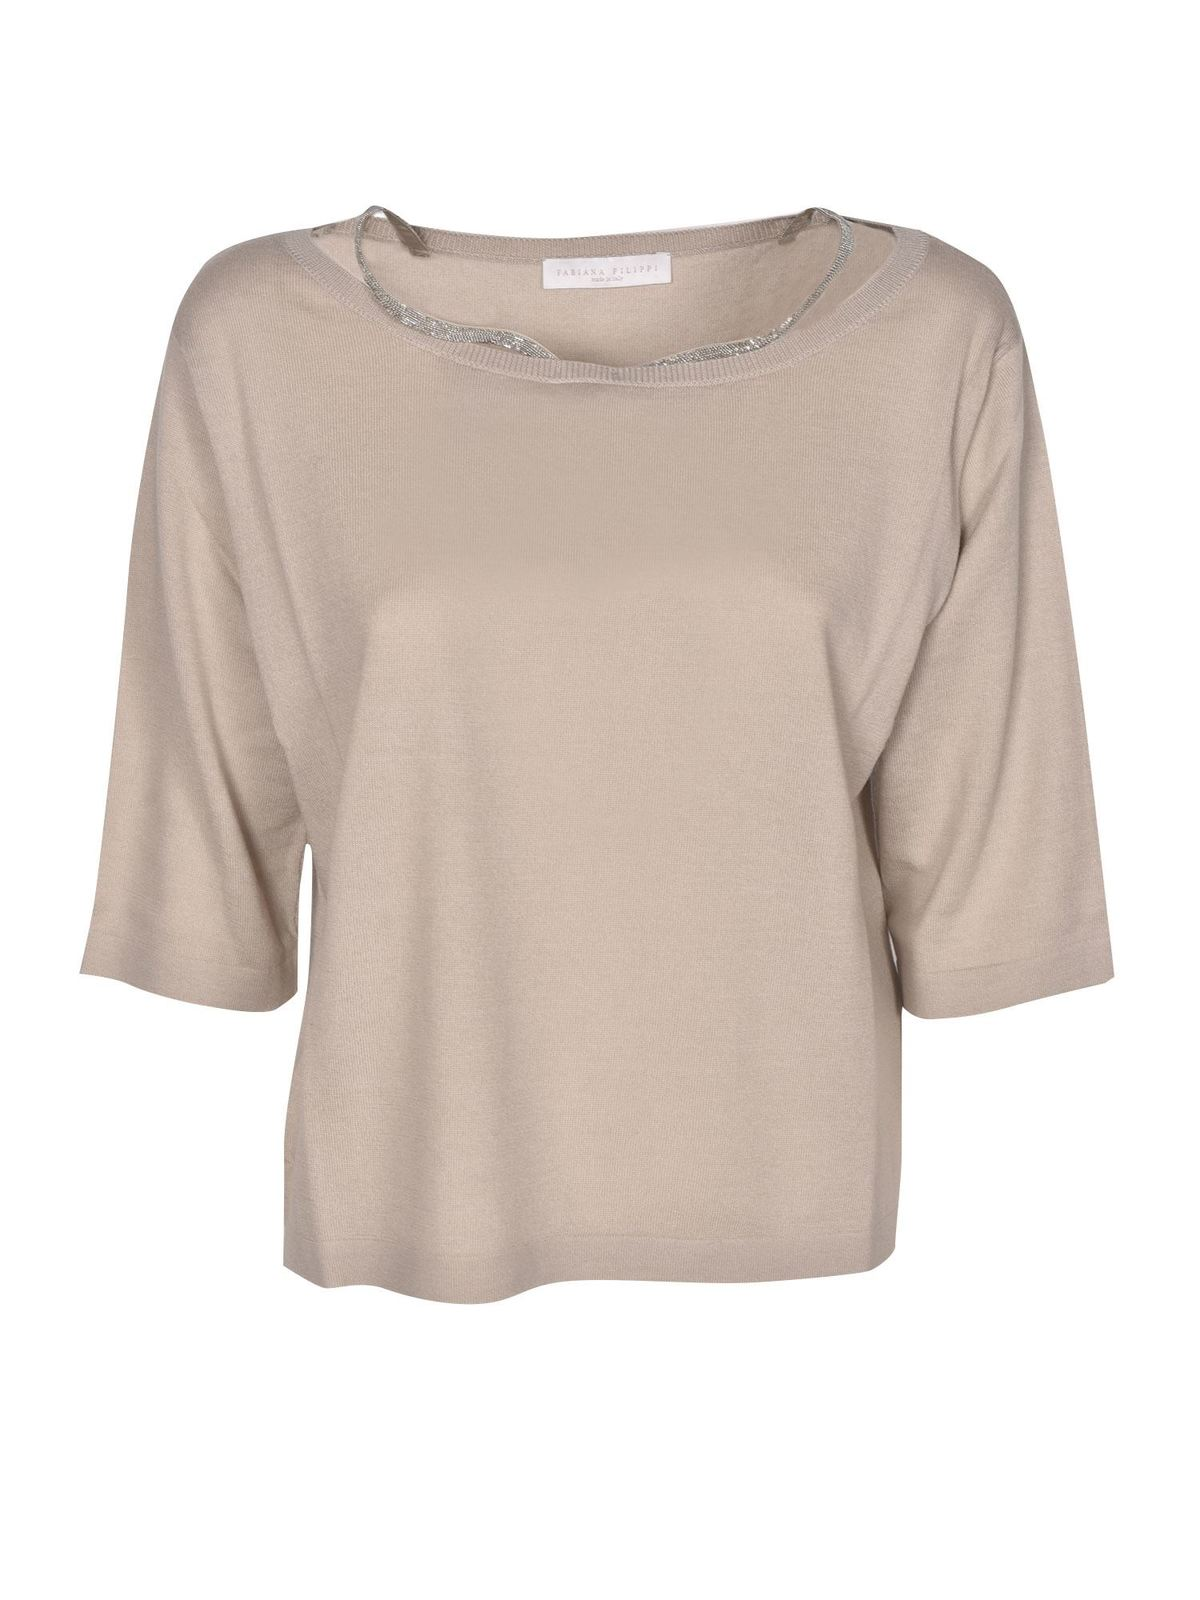 Fabiana Filippi MICROBEADS INSERT SWEATER IN SAND COLOR